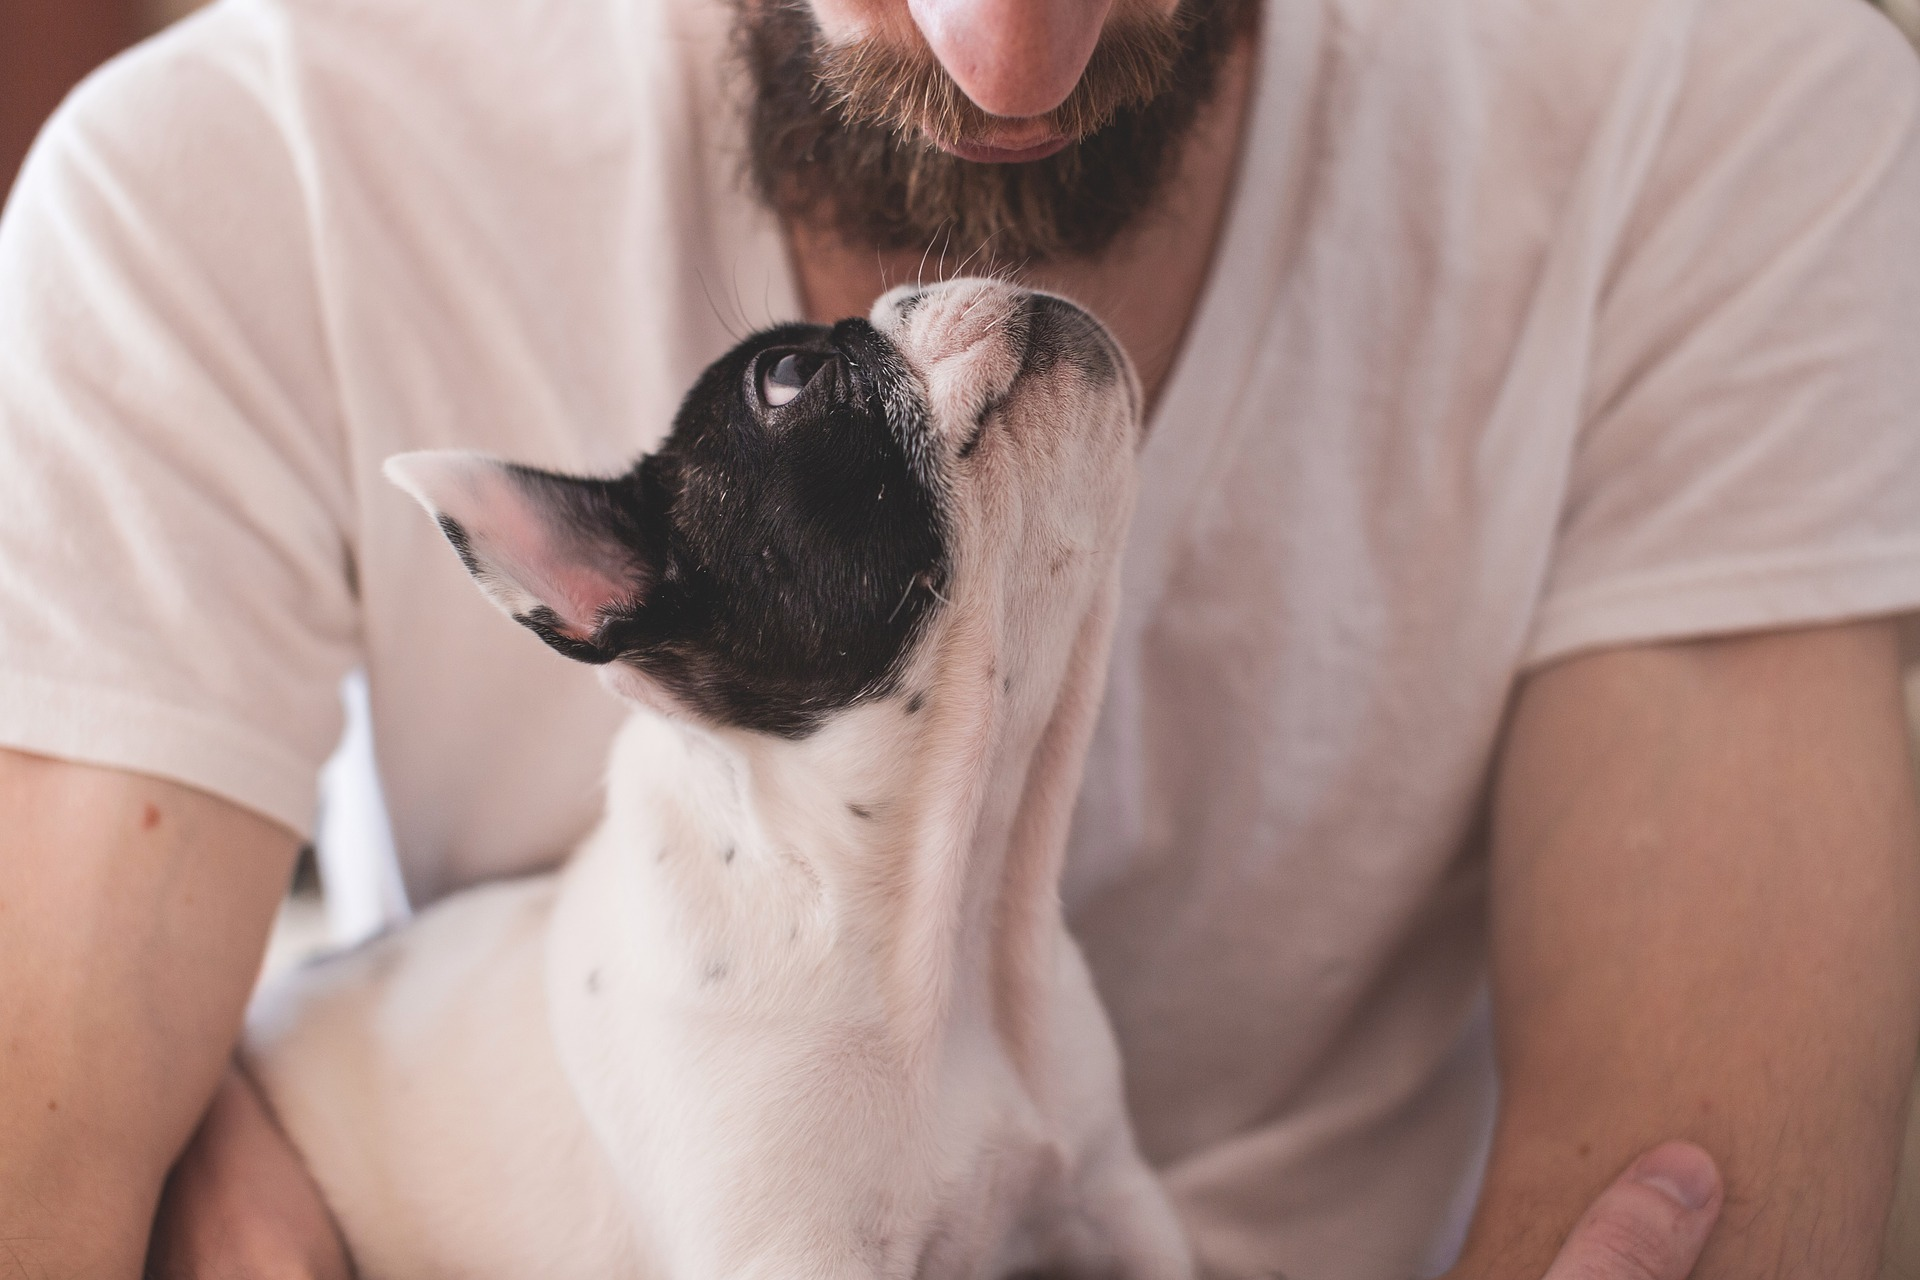 A pet can make you happier than a partner, according to a survey by pet charity Blue Cross